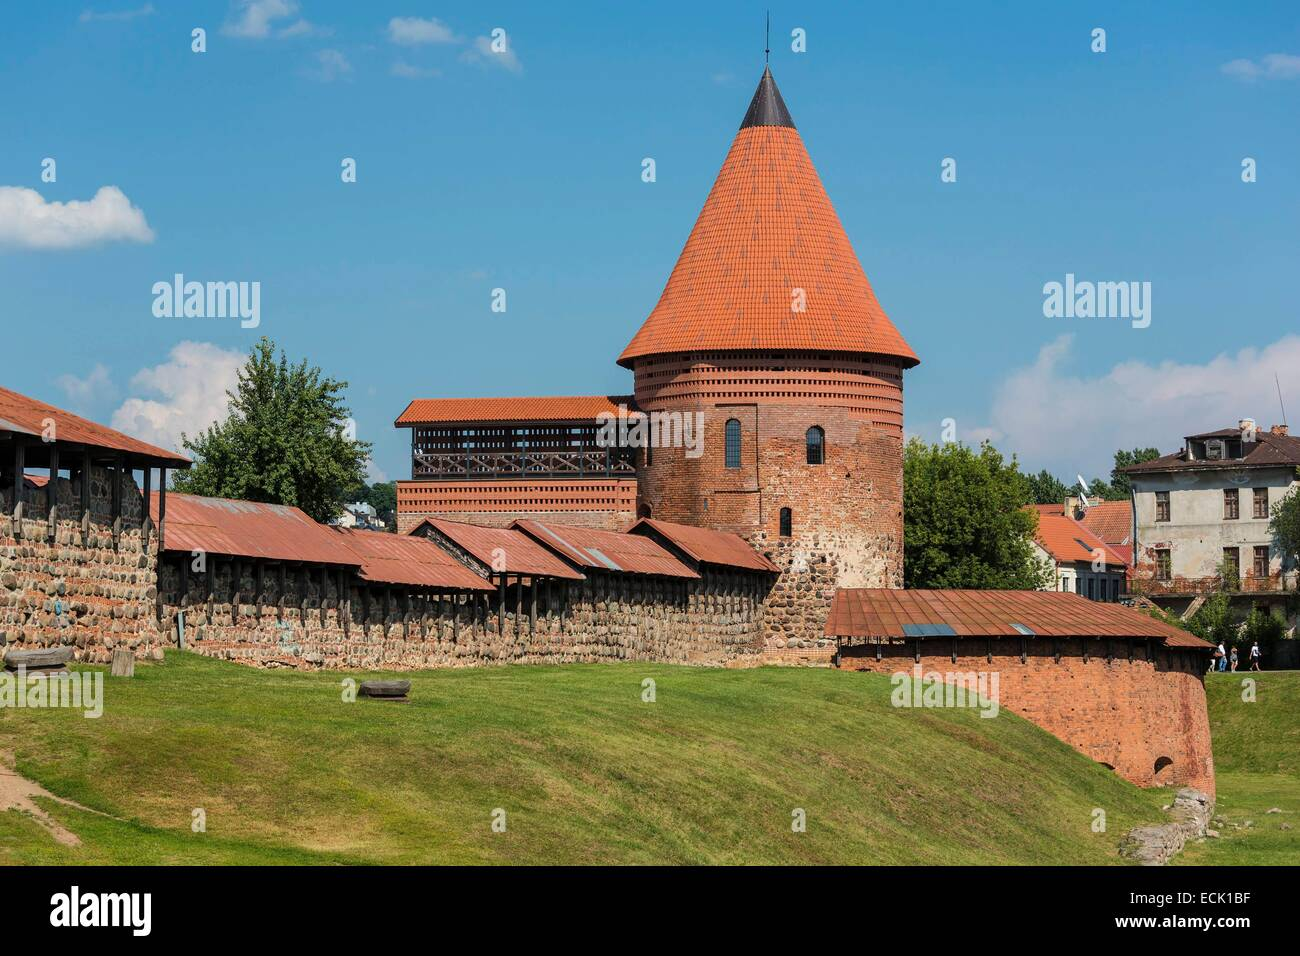 Lithuania (Baltic States), Kaunas County, Kaunas, Kaunas castle from the 13th century - Stock Image